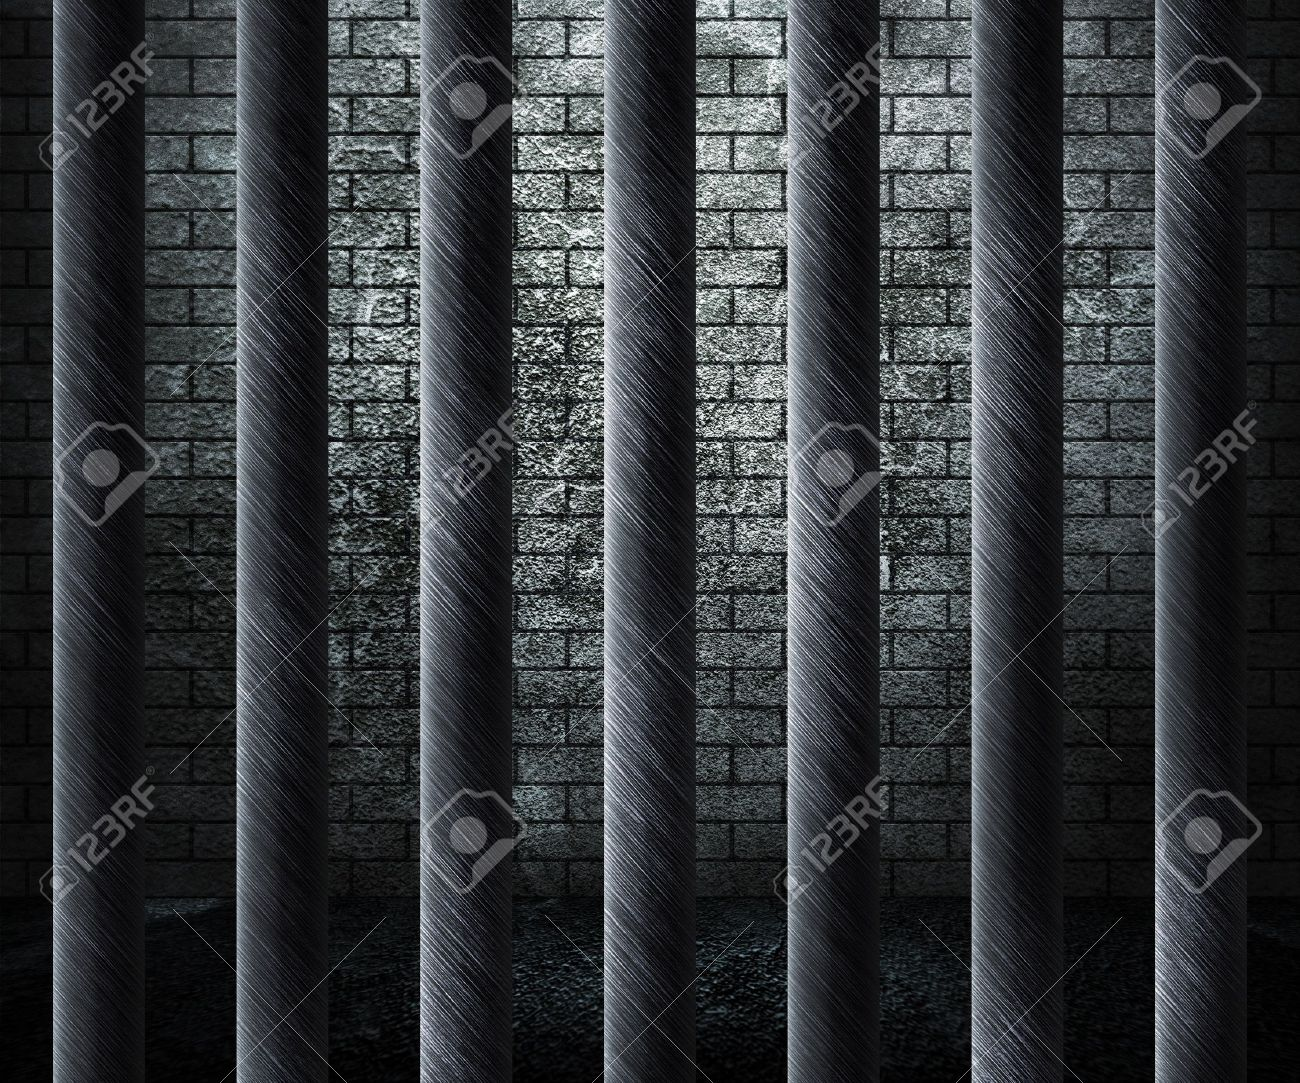 Prison Cell Background Stock Photo - 14367387